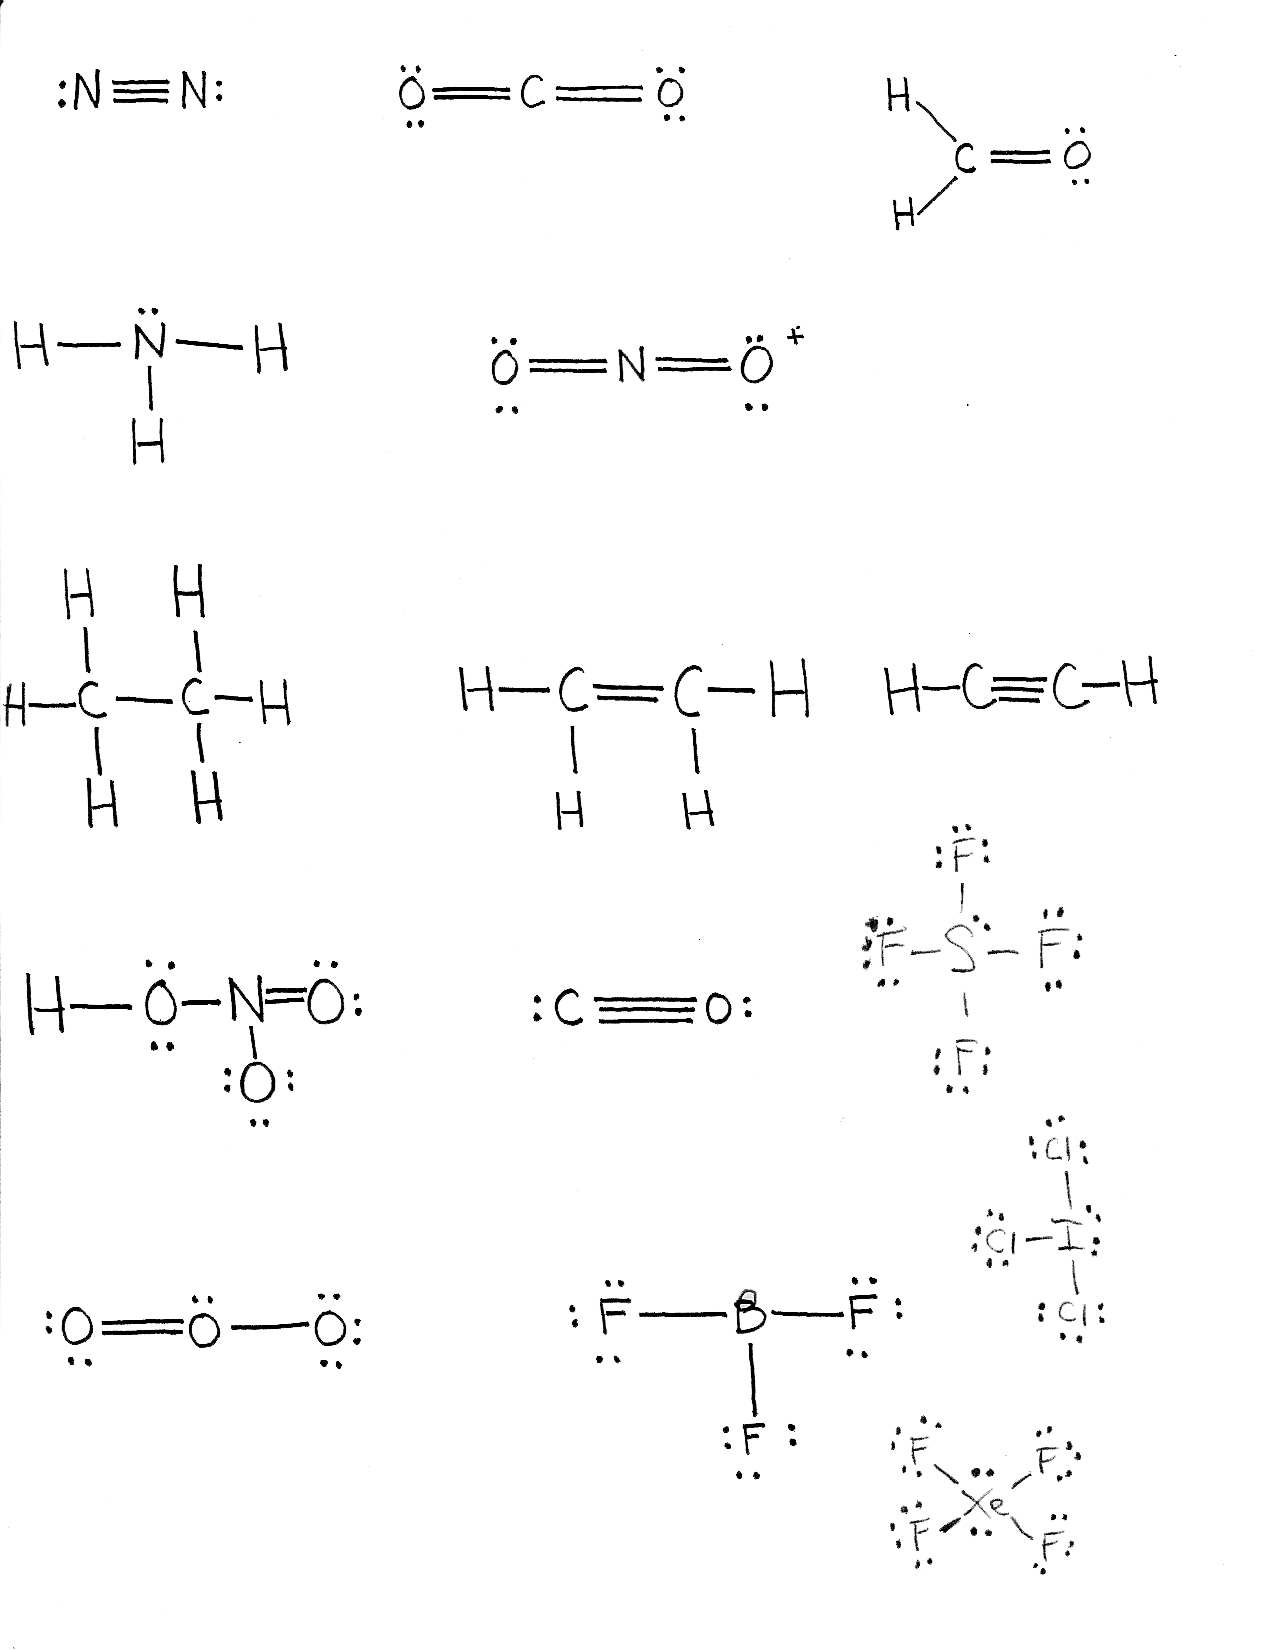 Chem111 SUNY Oneonta Vining – Lewis Structures Worksheet